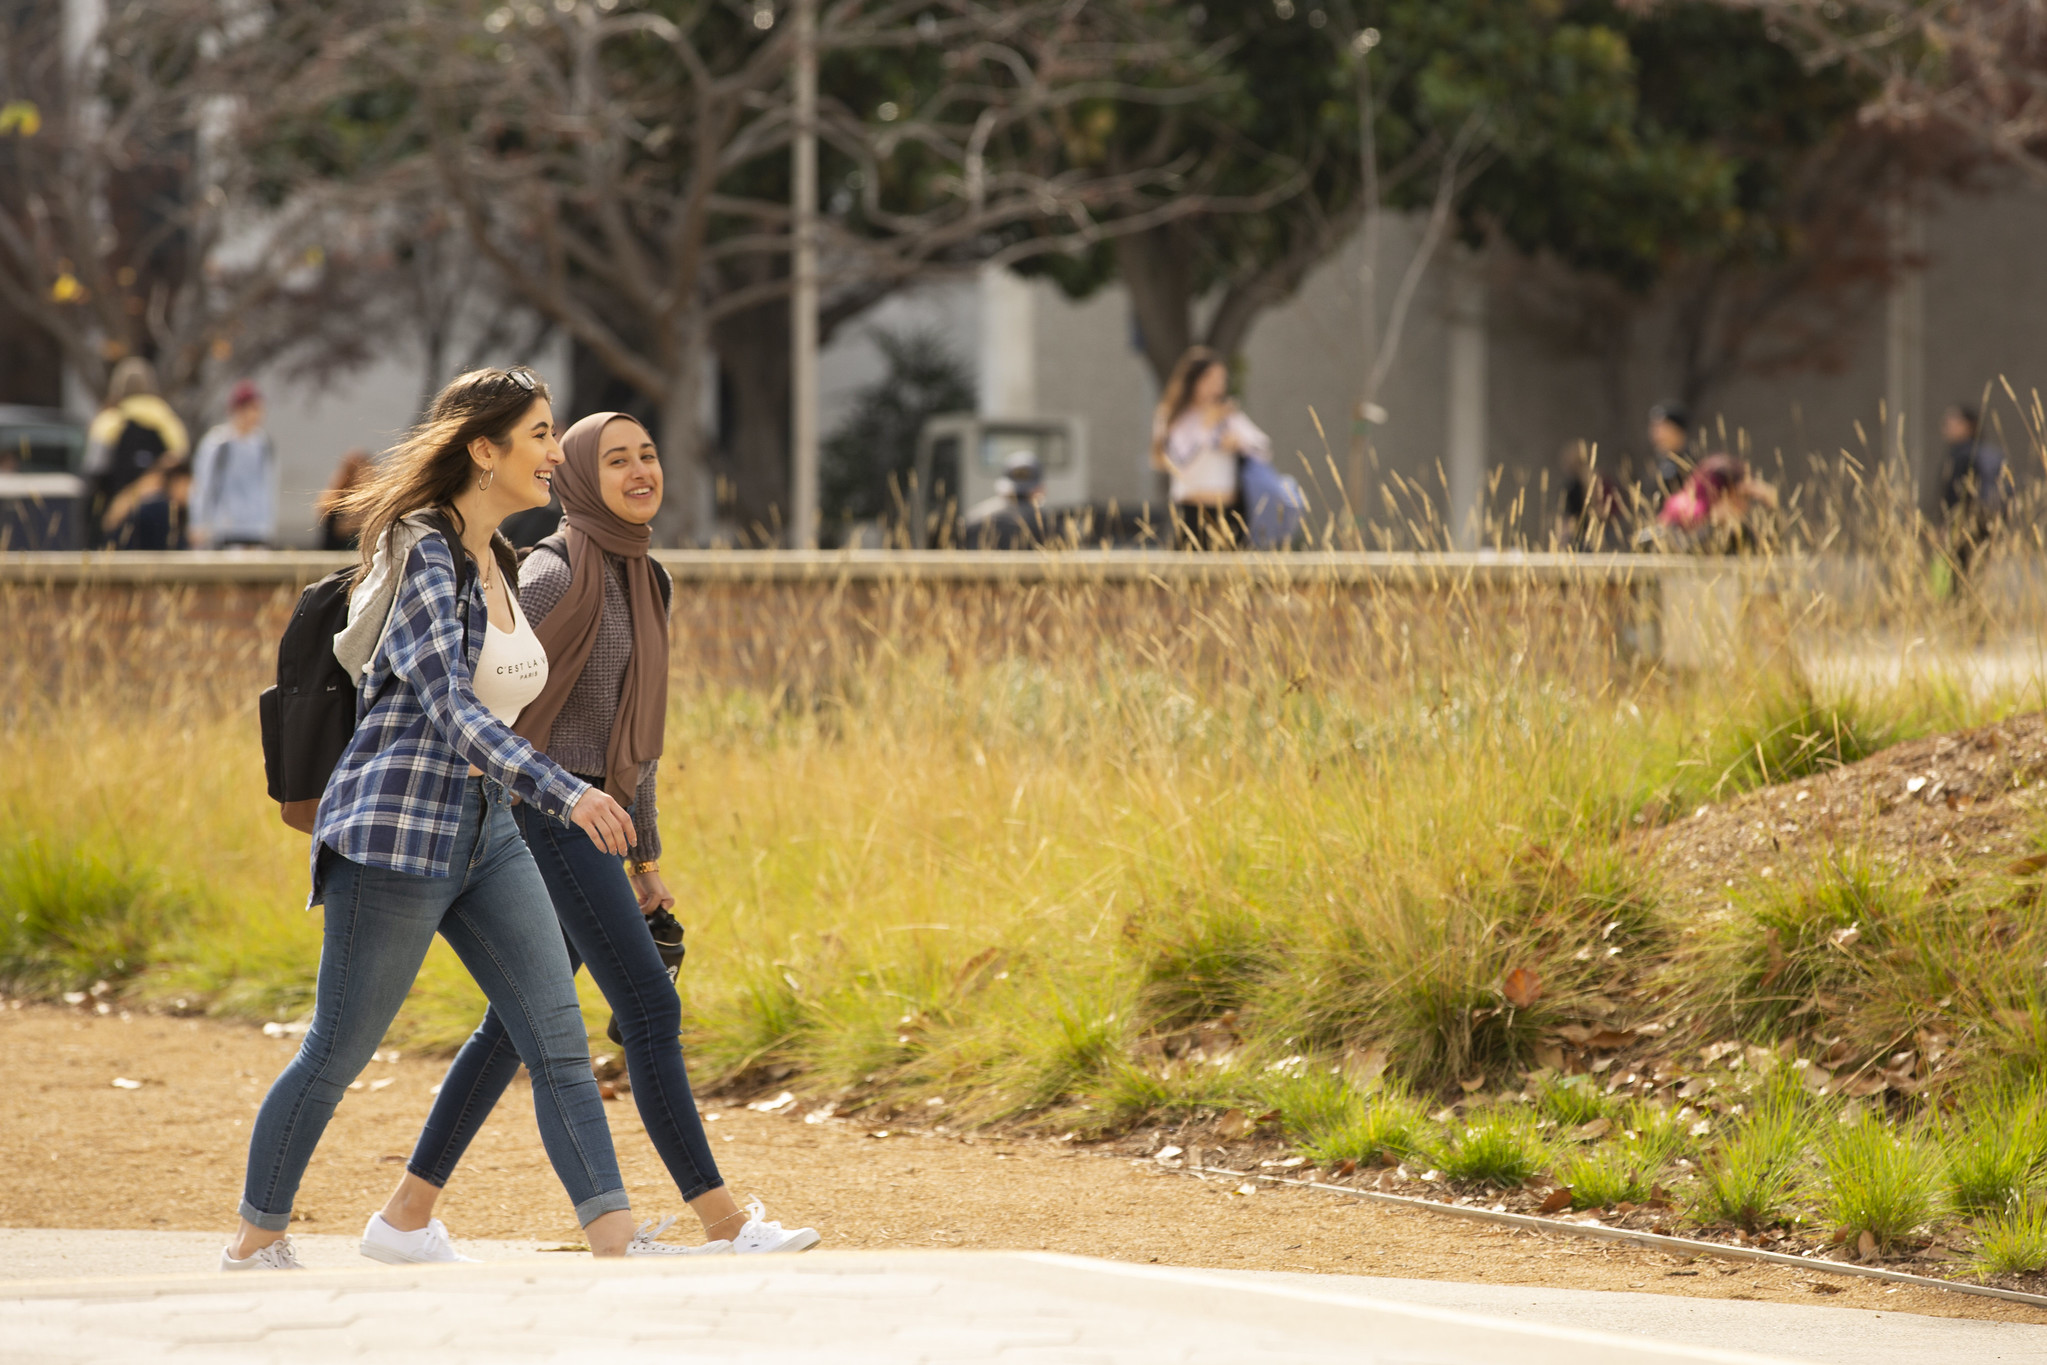 Two young women walking across a college campus talking with one another.